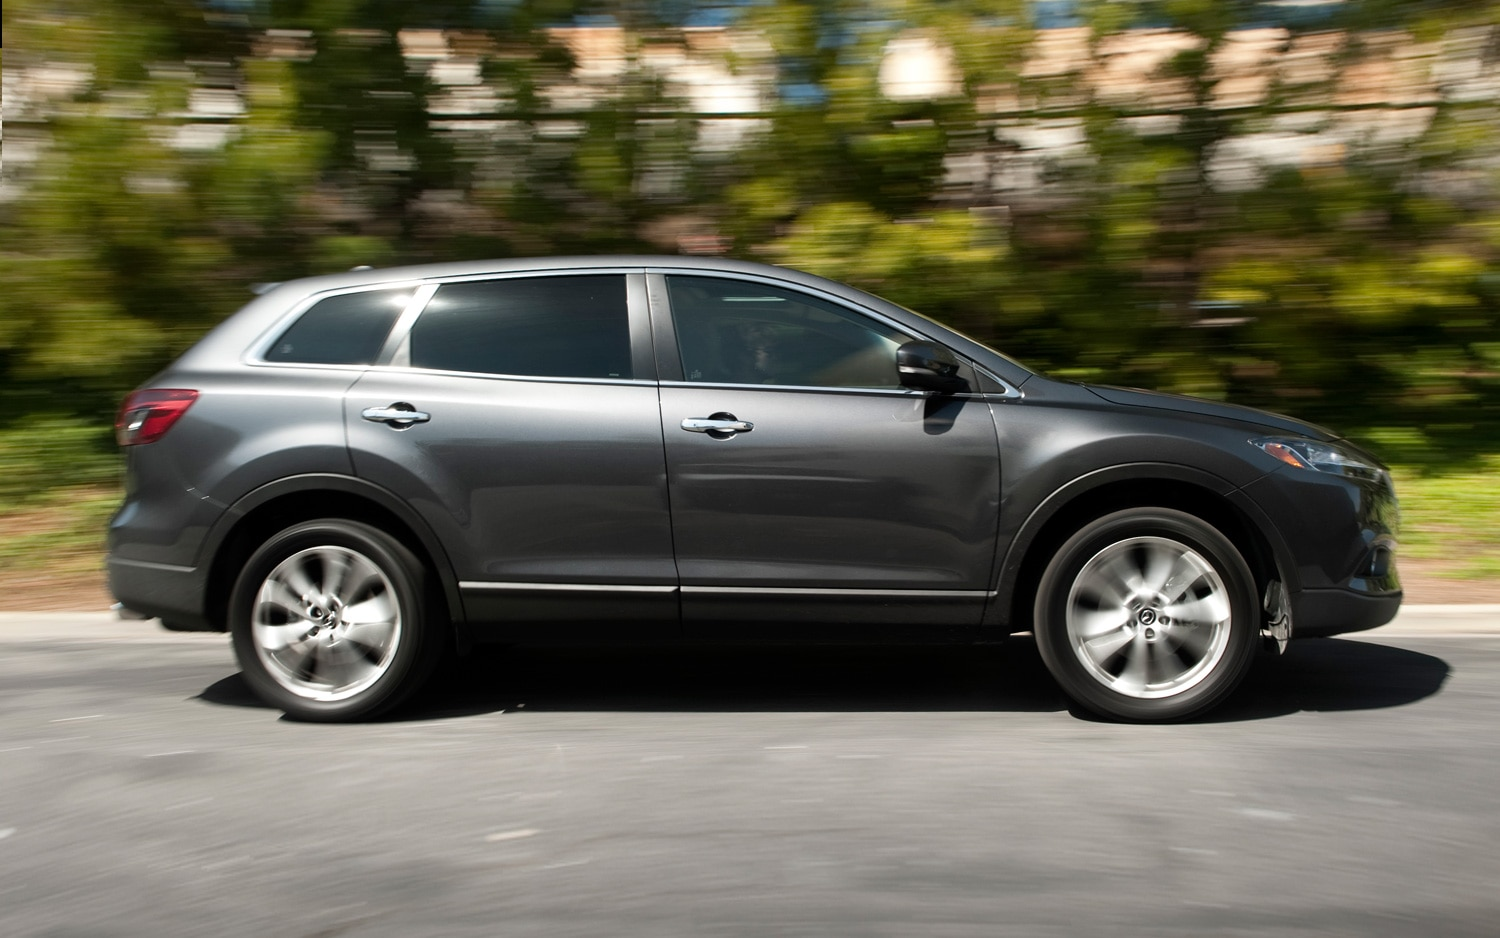 2014 mazda cx 9 pricing starts at 30 780. Black Bedroom Furniture Sets. Home Design Ideas